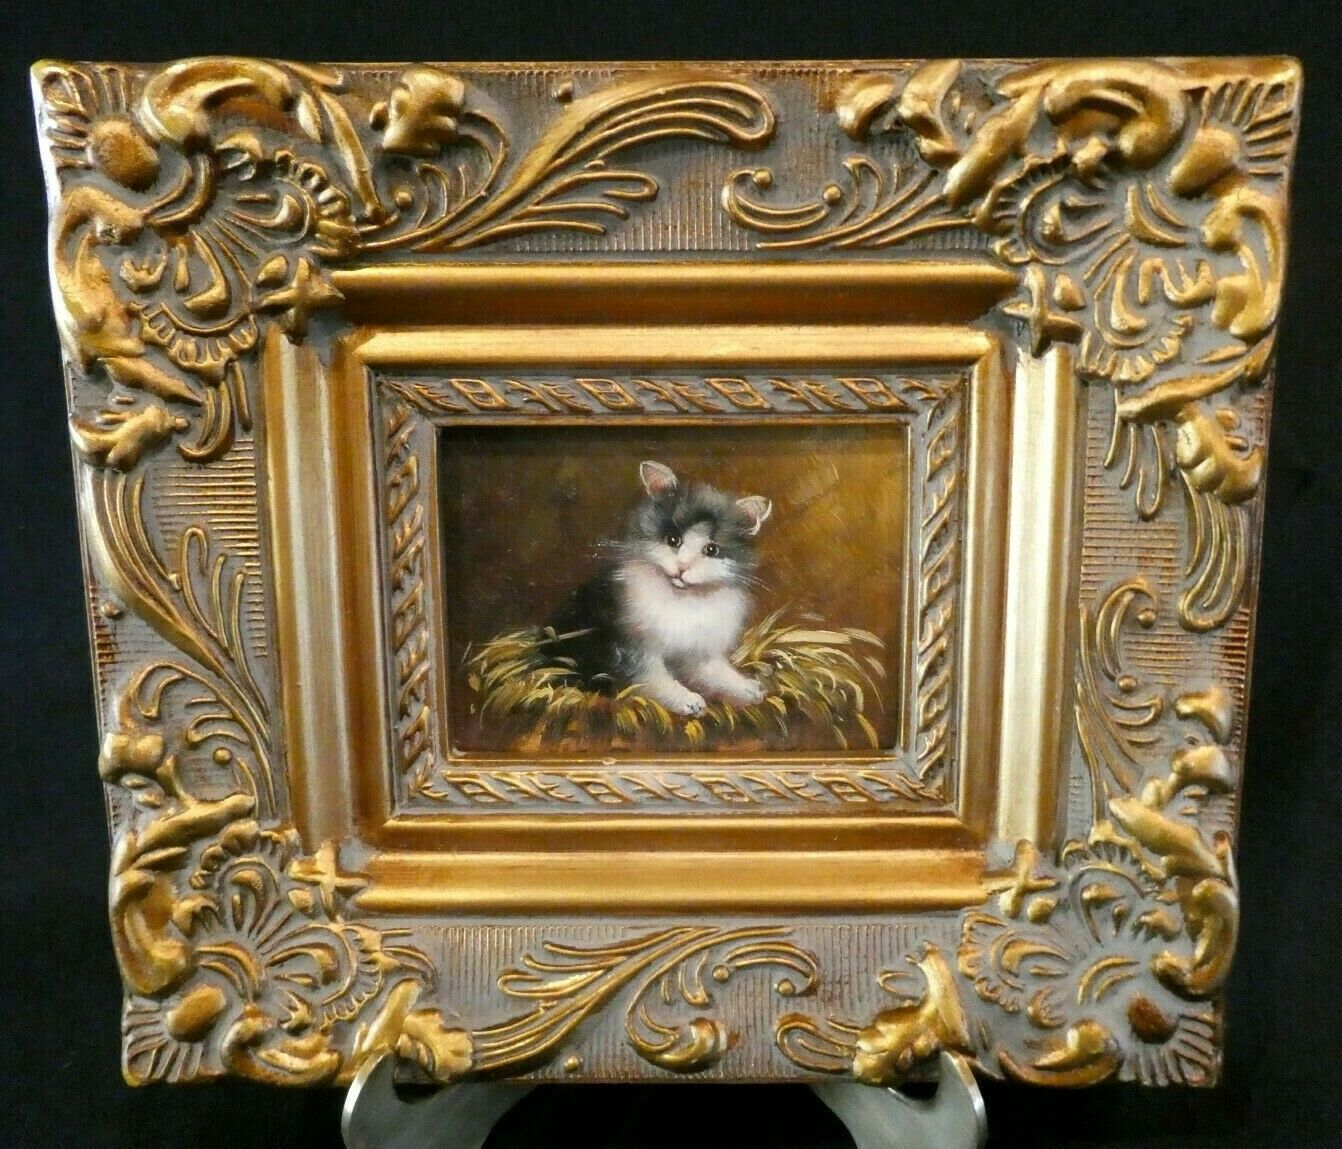 Vintage Antique Gold Gilt Gesso Frame With Oil Painting Of A Cat Kitten On Wood  - $128.50